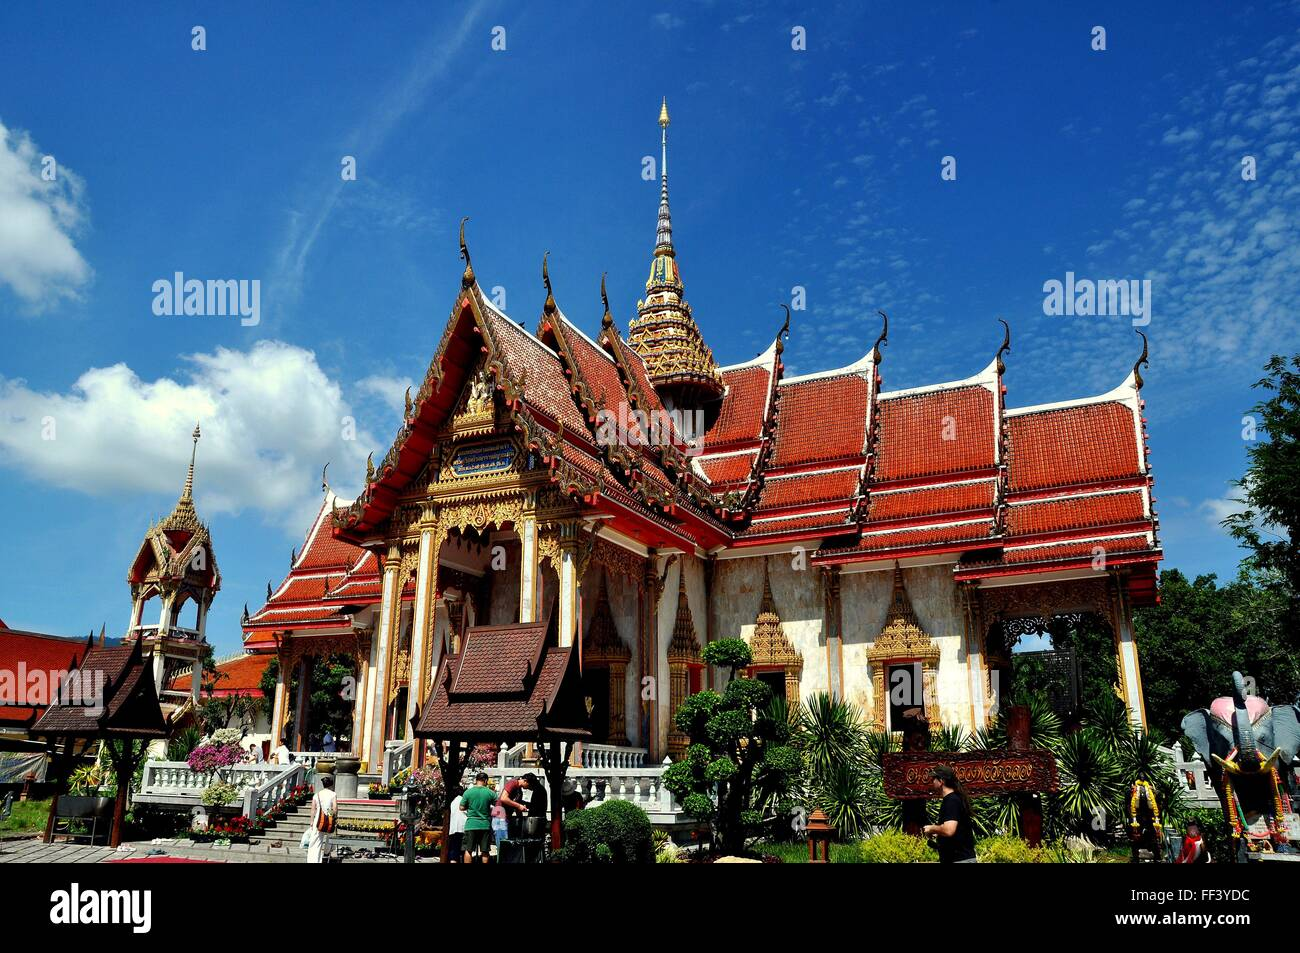 Phuket, Thailand:  Ubosot Sanctuary Hall with its steeply pitched, gabled roofs, gilded chofah ornaments at Wat Chalong Stock Photo